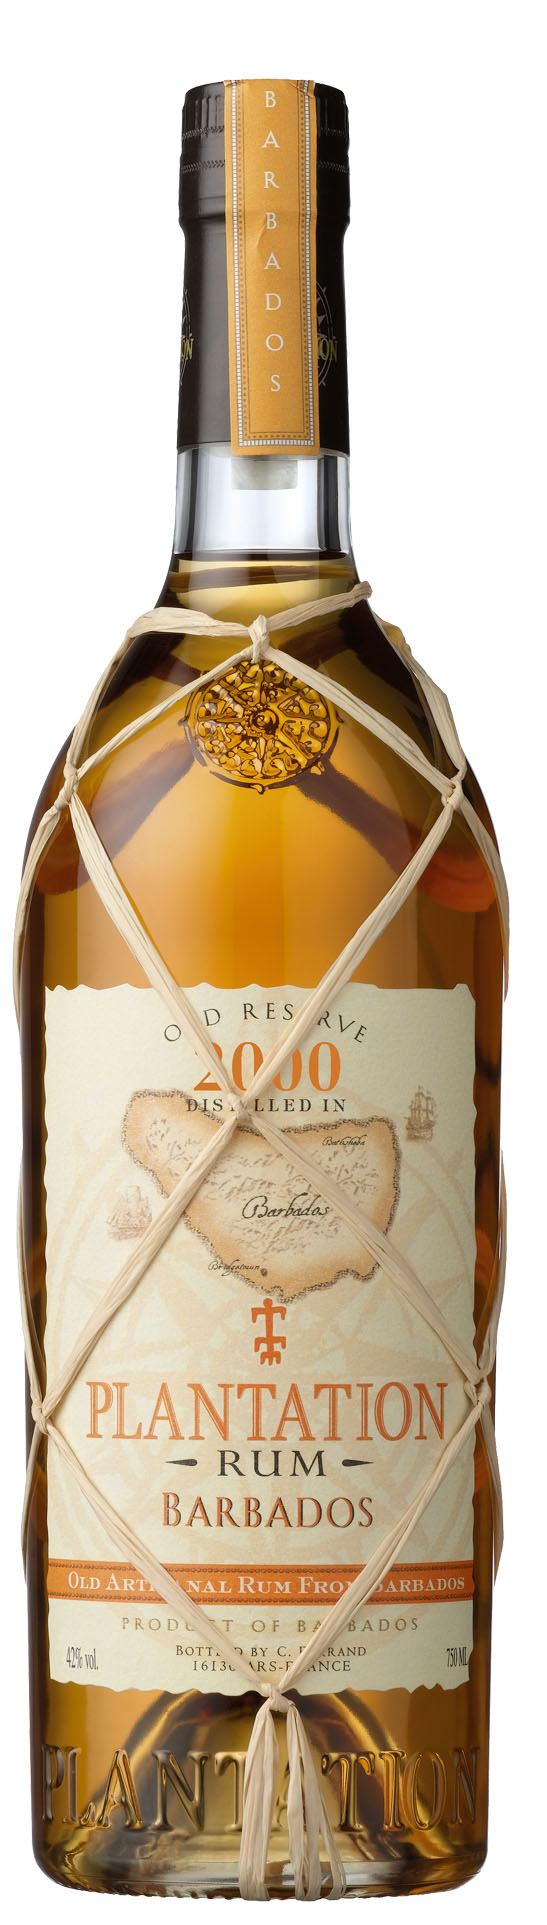 Plantation Rum Barbados 2000 Old Reserve 0,7l 42,0%